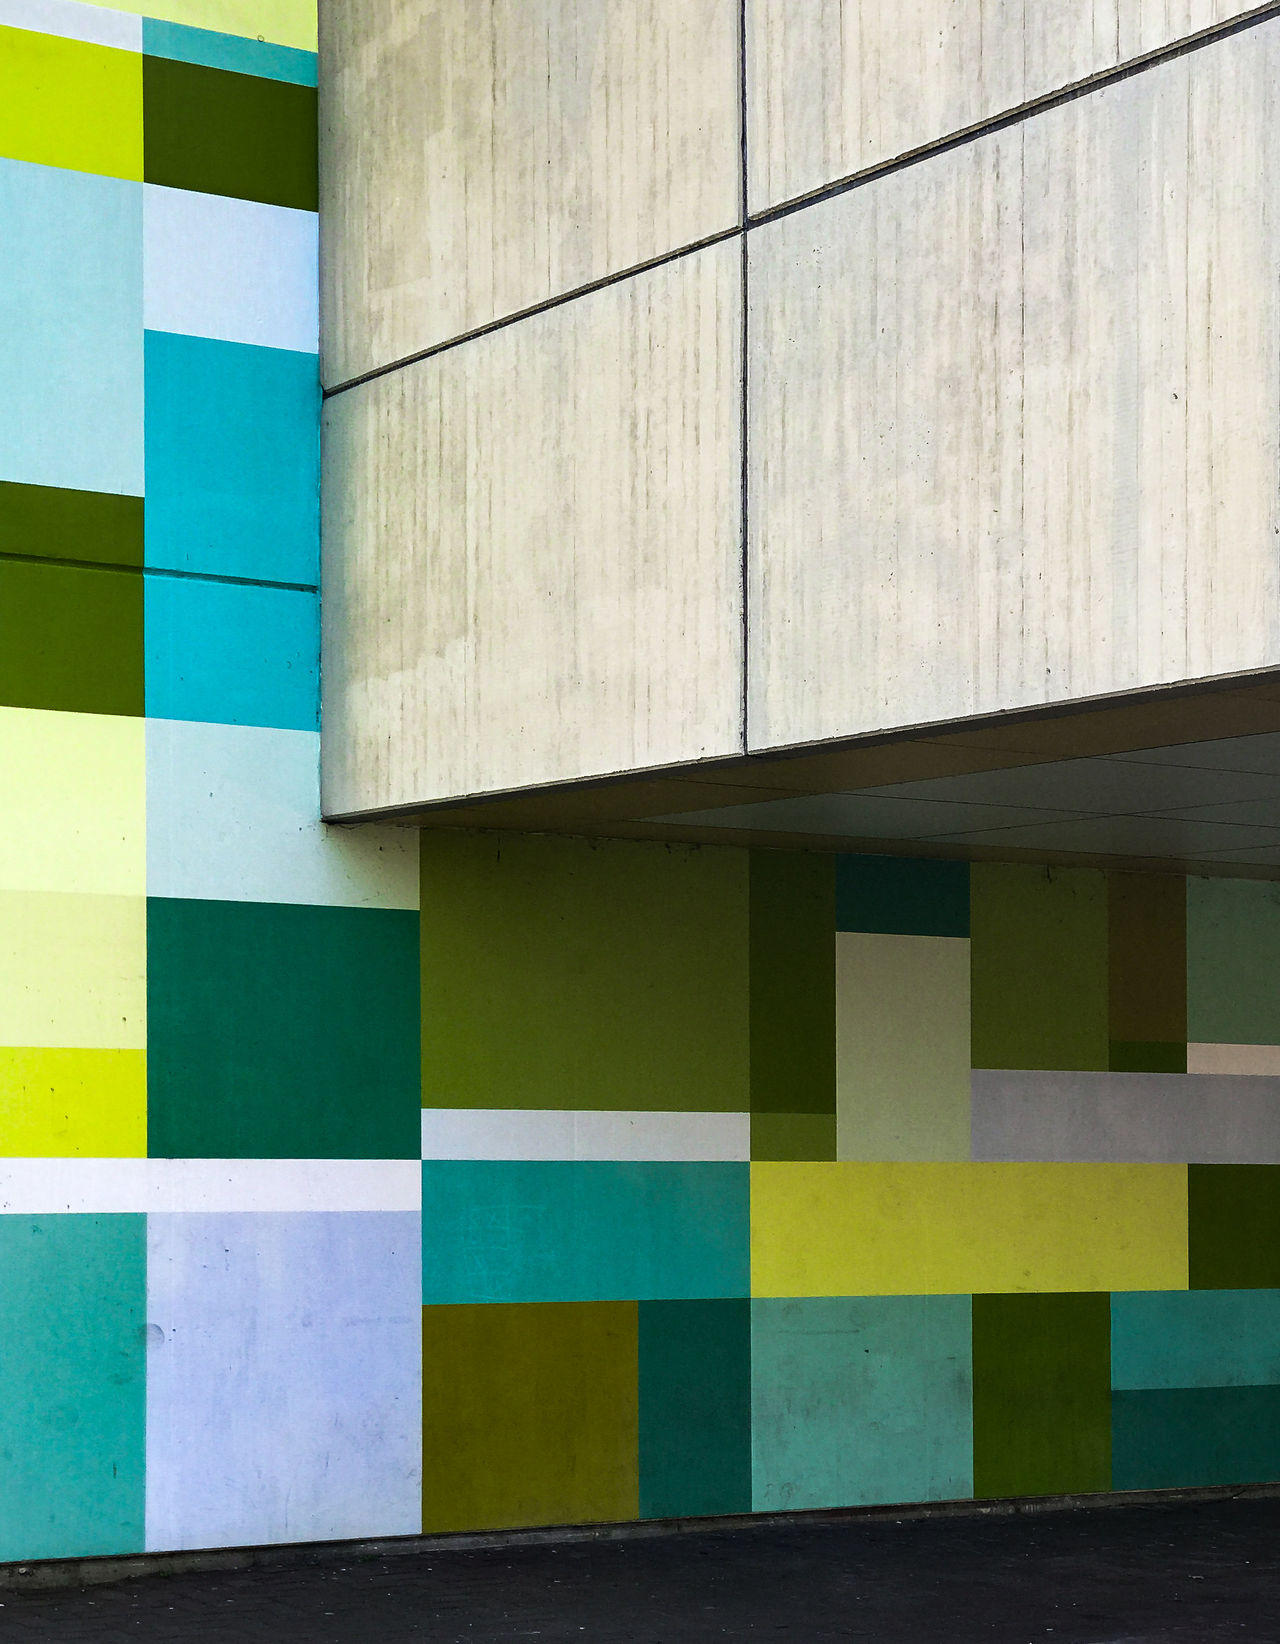 Architecture Building Exterior Built Structure Color Concrete Geometric Architecture Geometric Shapes Geometry Green Color Minimal Minimalism Minimalist Architecture Minimalobsession Modern Architecture Multi Colored Outdoors Pattern Pattern, Texture, Shape And Form Urban Exploration Urban Geometry Wall Art Wall Painting The Architect - 2017 EyeEm Awards